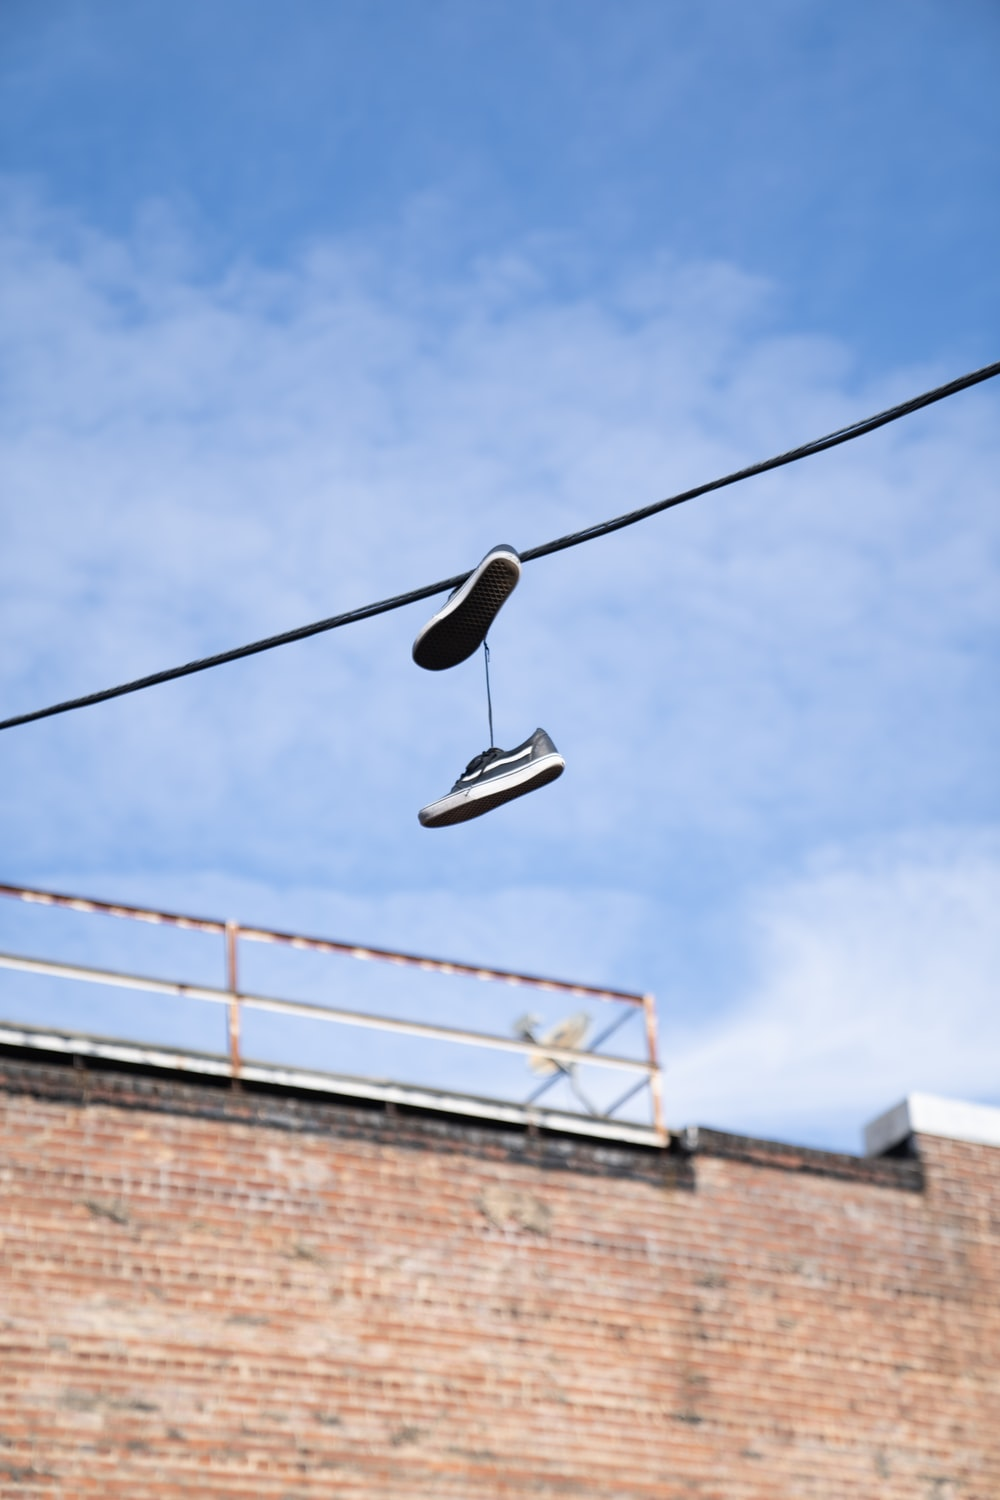 low-angle photography of shoes hanging on cable